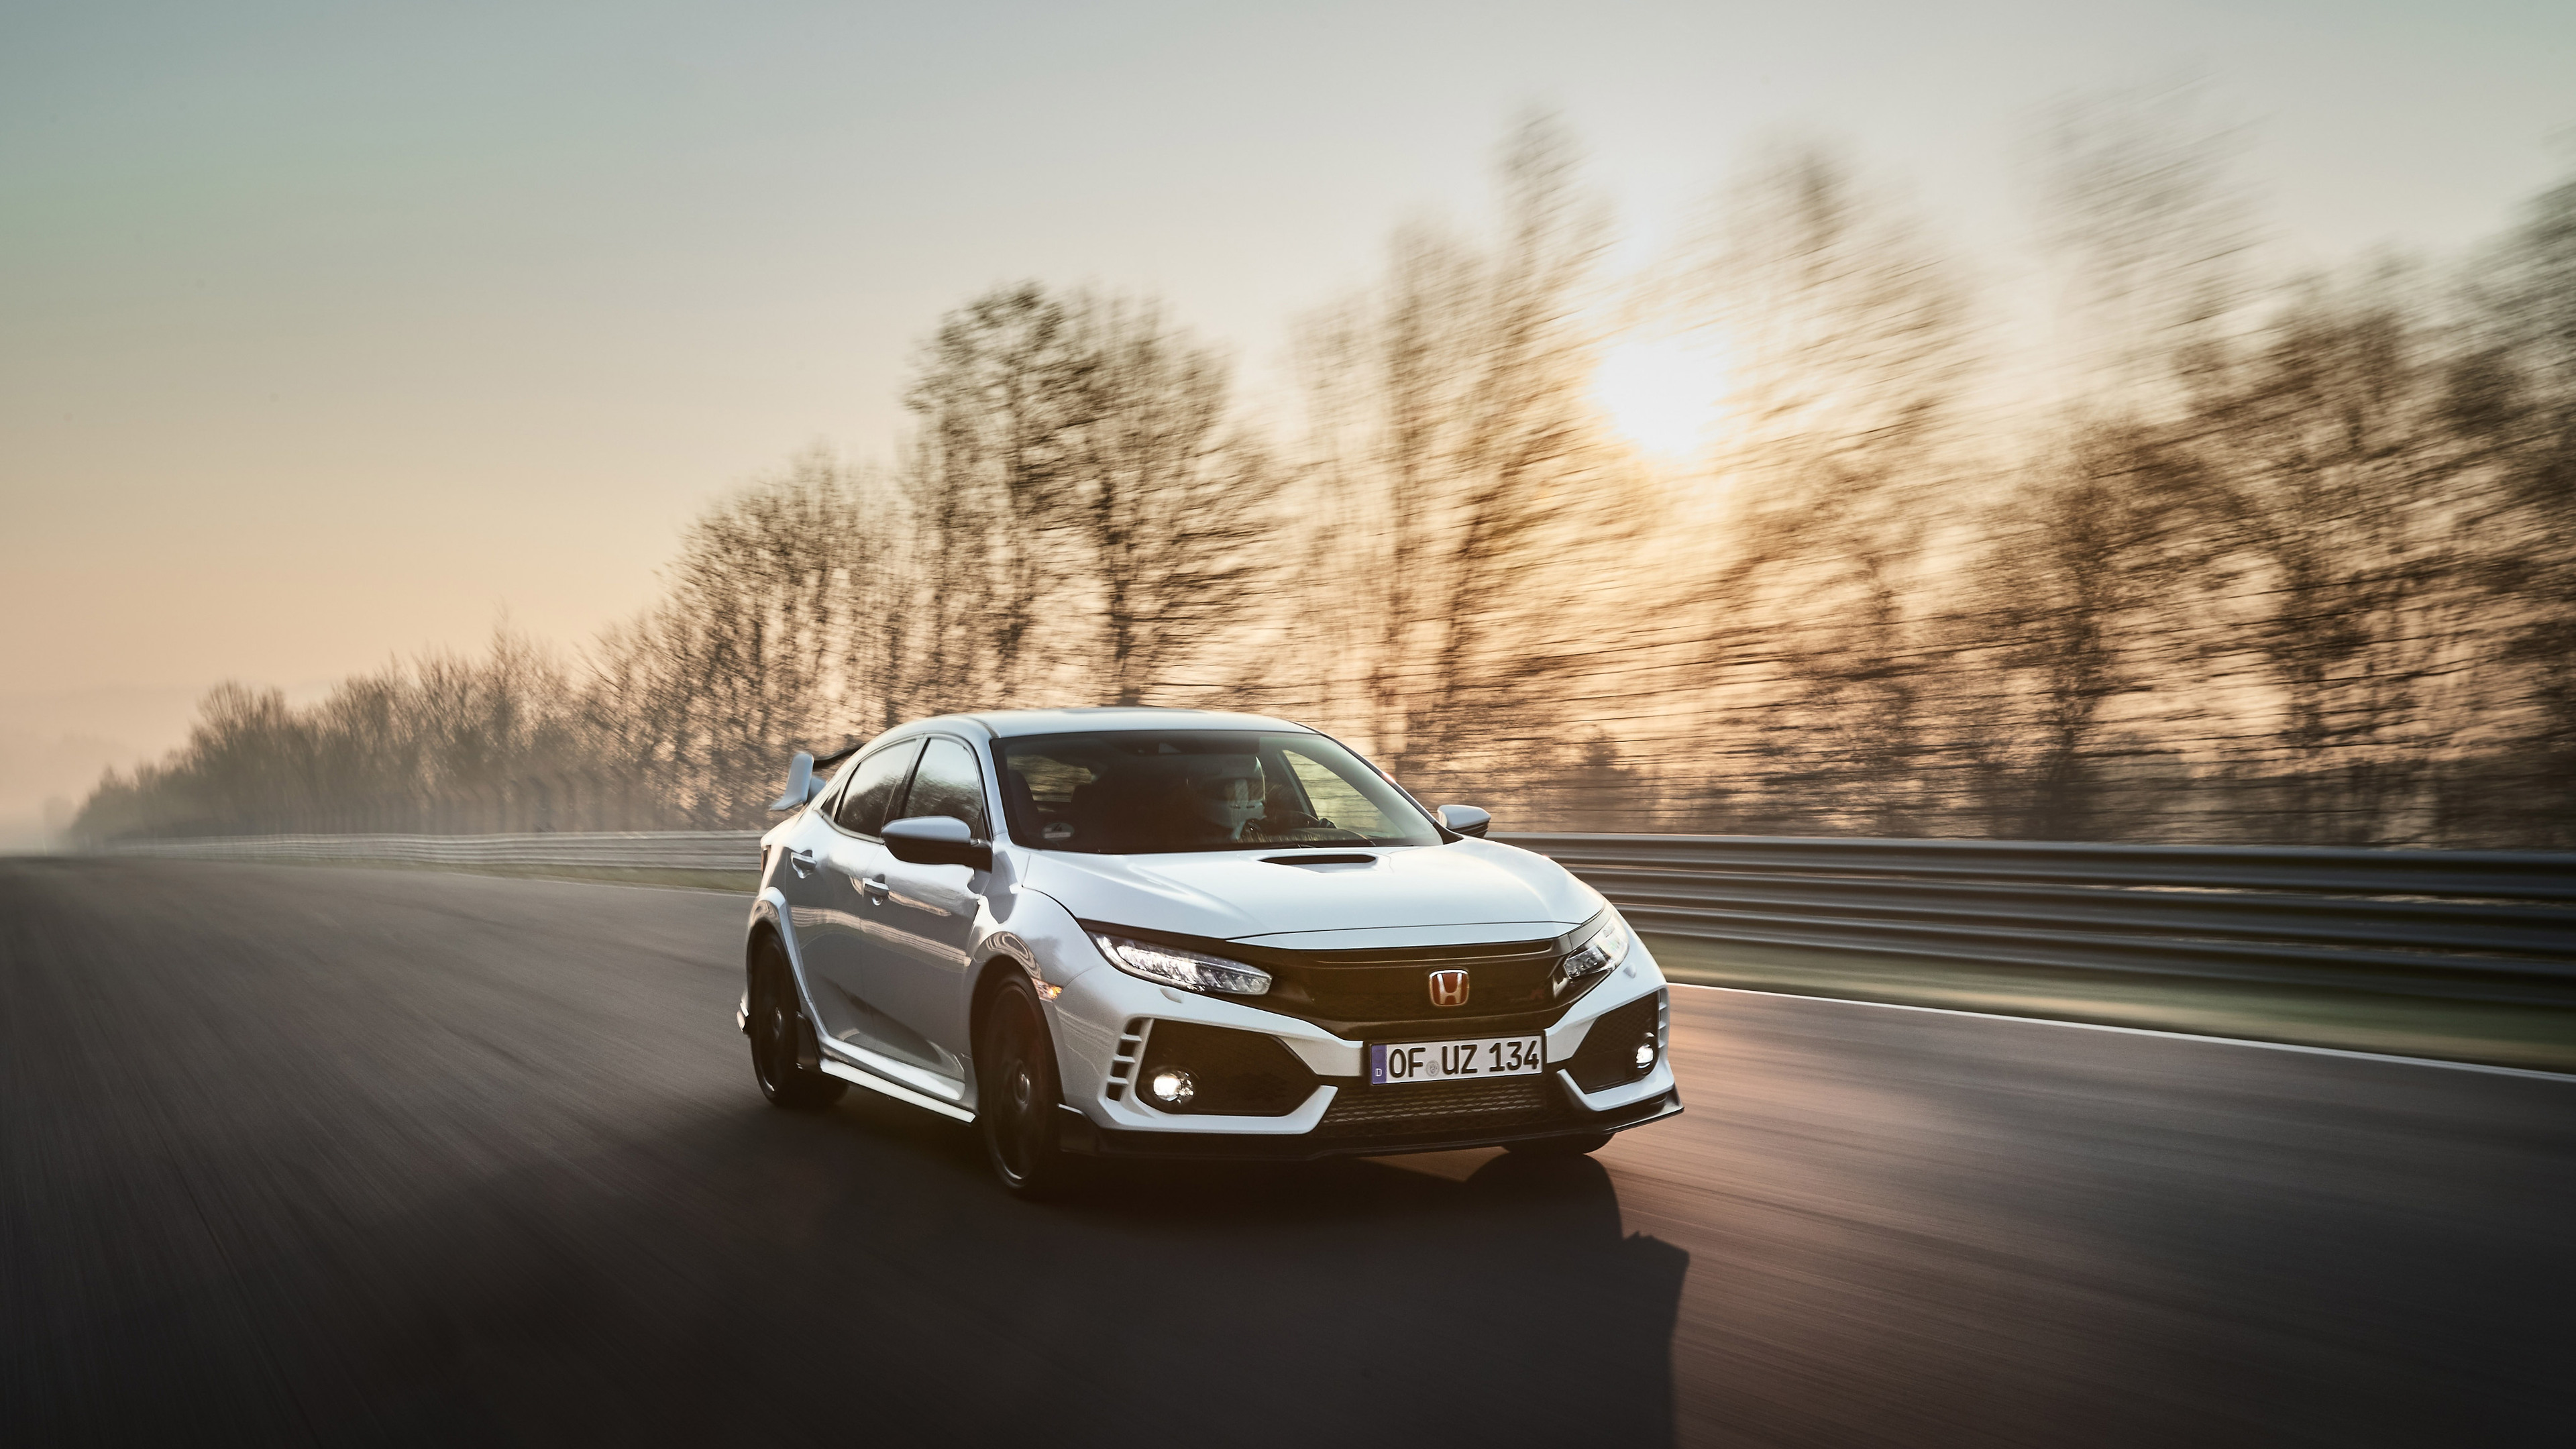 honda-civic-type-r-4k-to.jpg